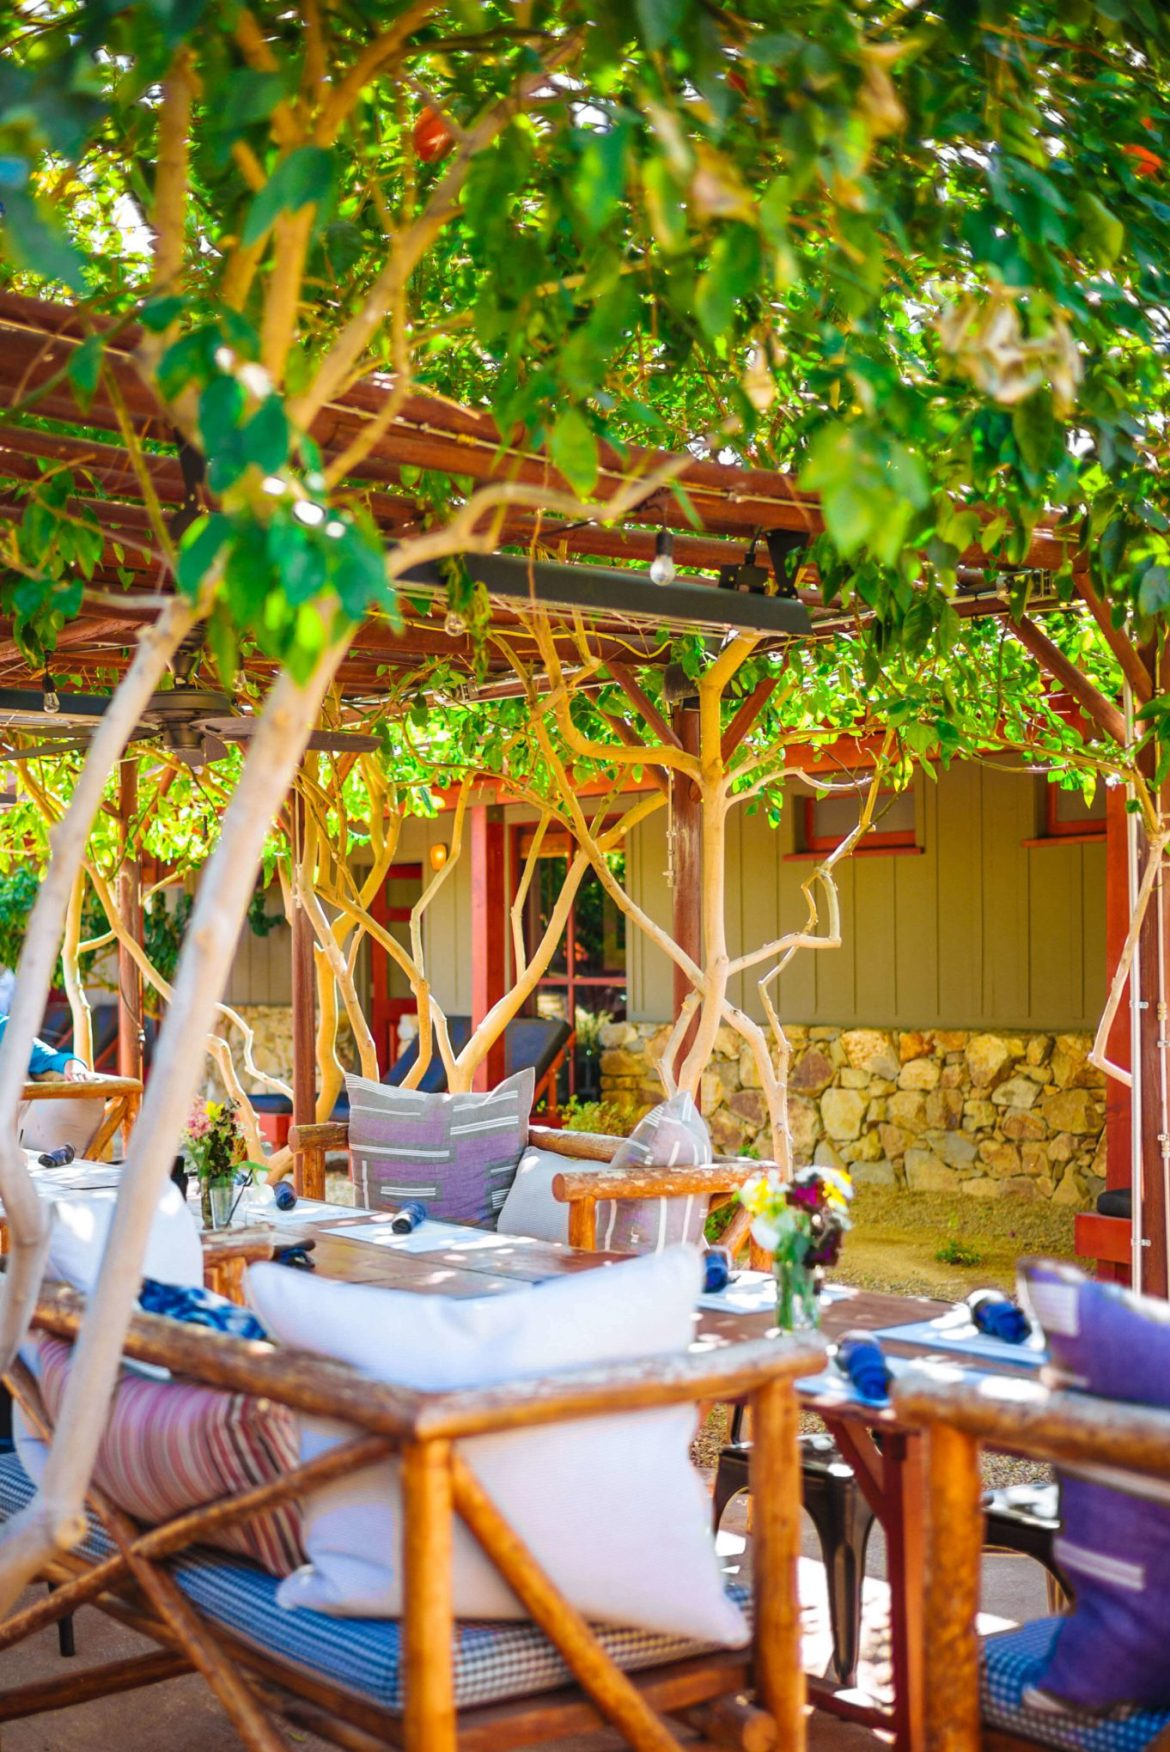 You'll find the best outdoor dining in Palm Springs seated under the orange trees at this hidden gem the Barn Kitchen at Sparrows Lodge in Palm Springs, thetasteedit